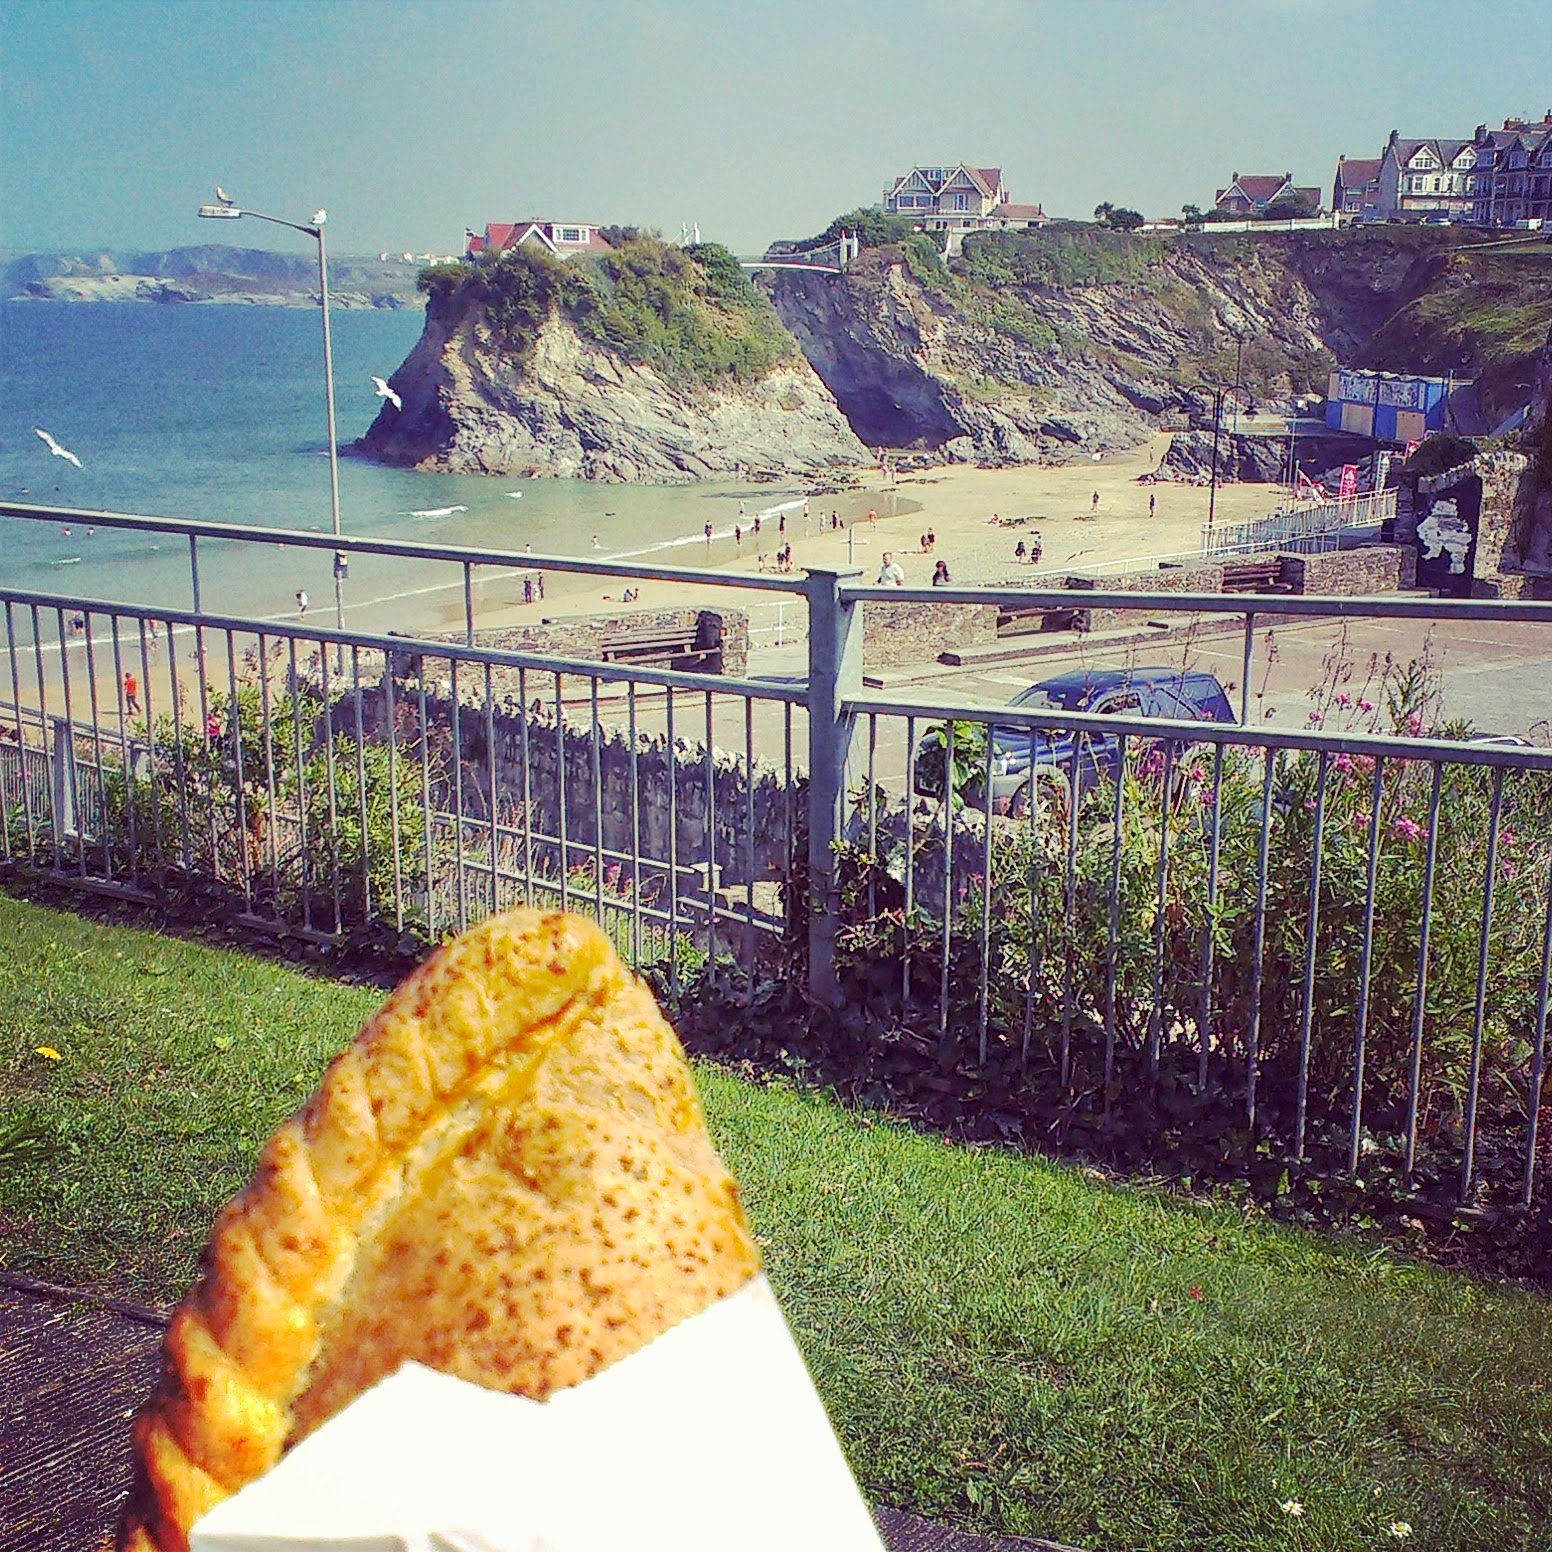 Pasty in Newquay